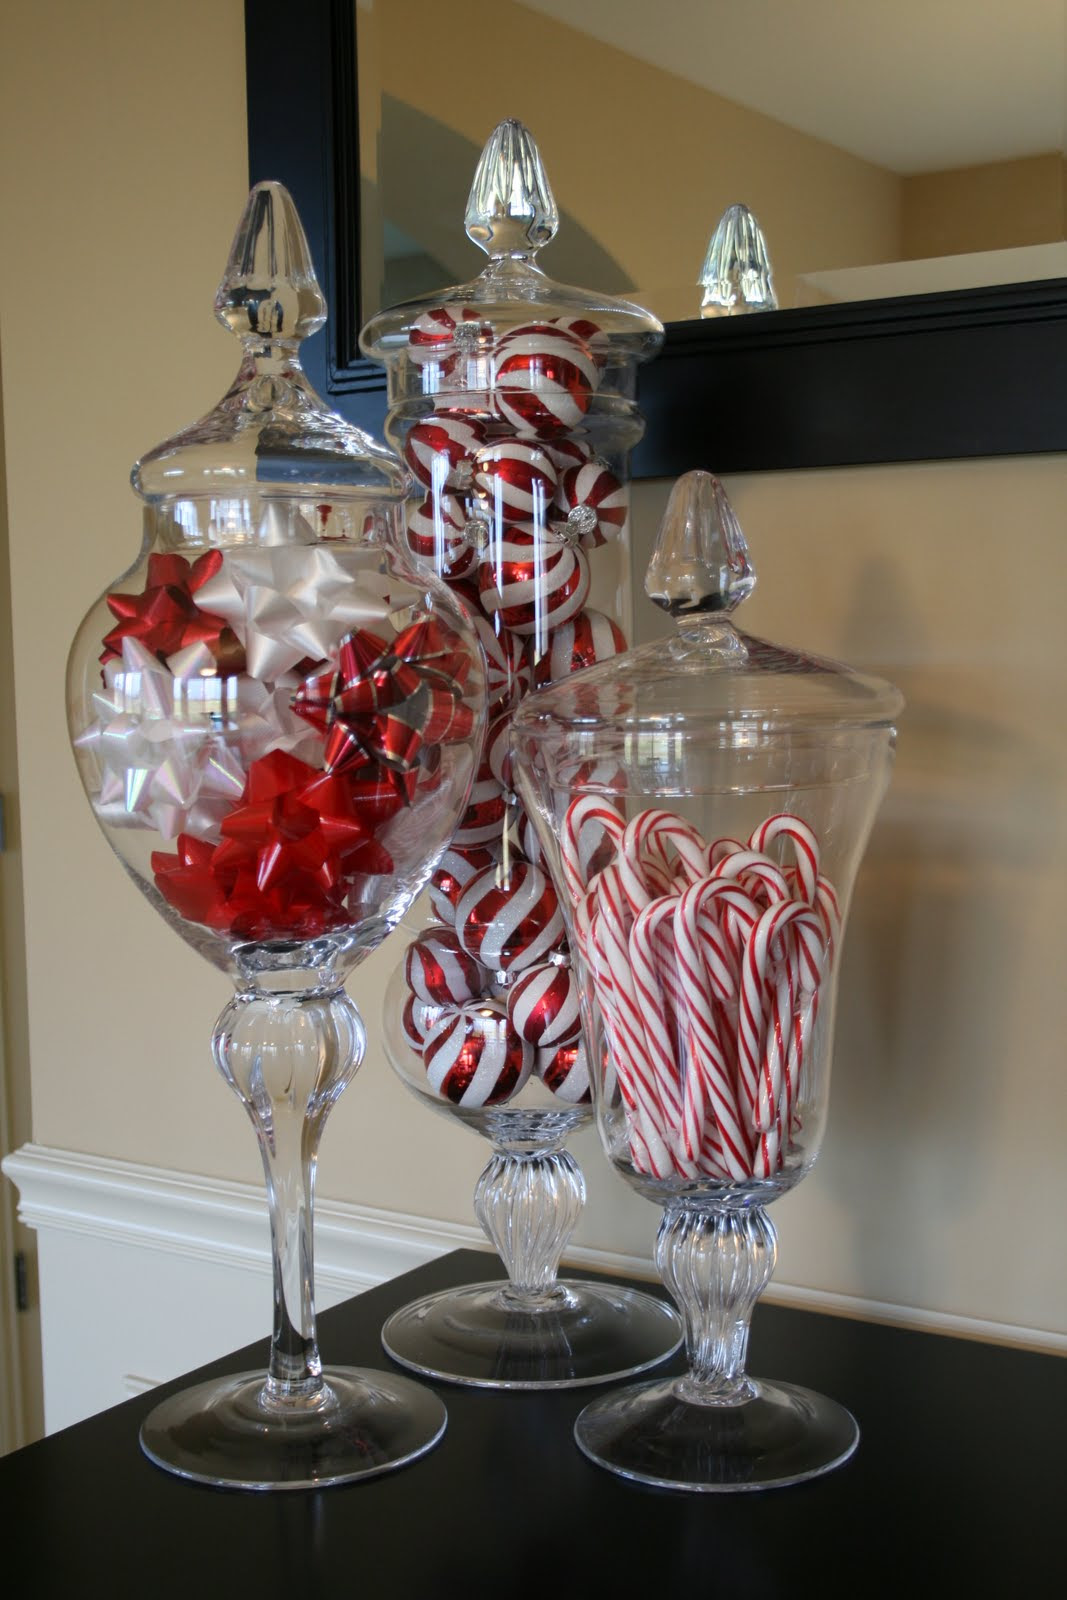 From Snow Globes to Card Art: 7 Simple DIY Holiday Decor Ideas